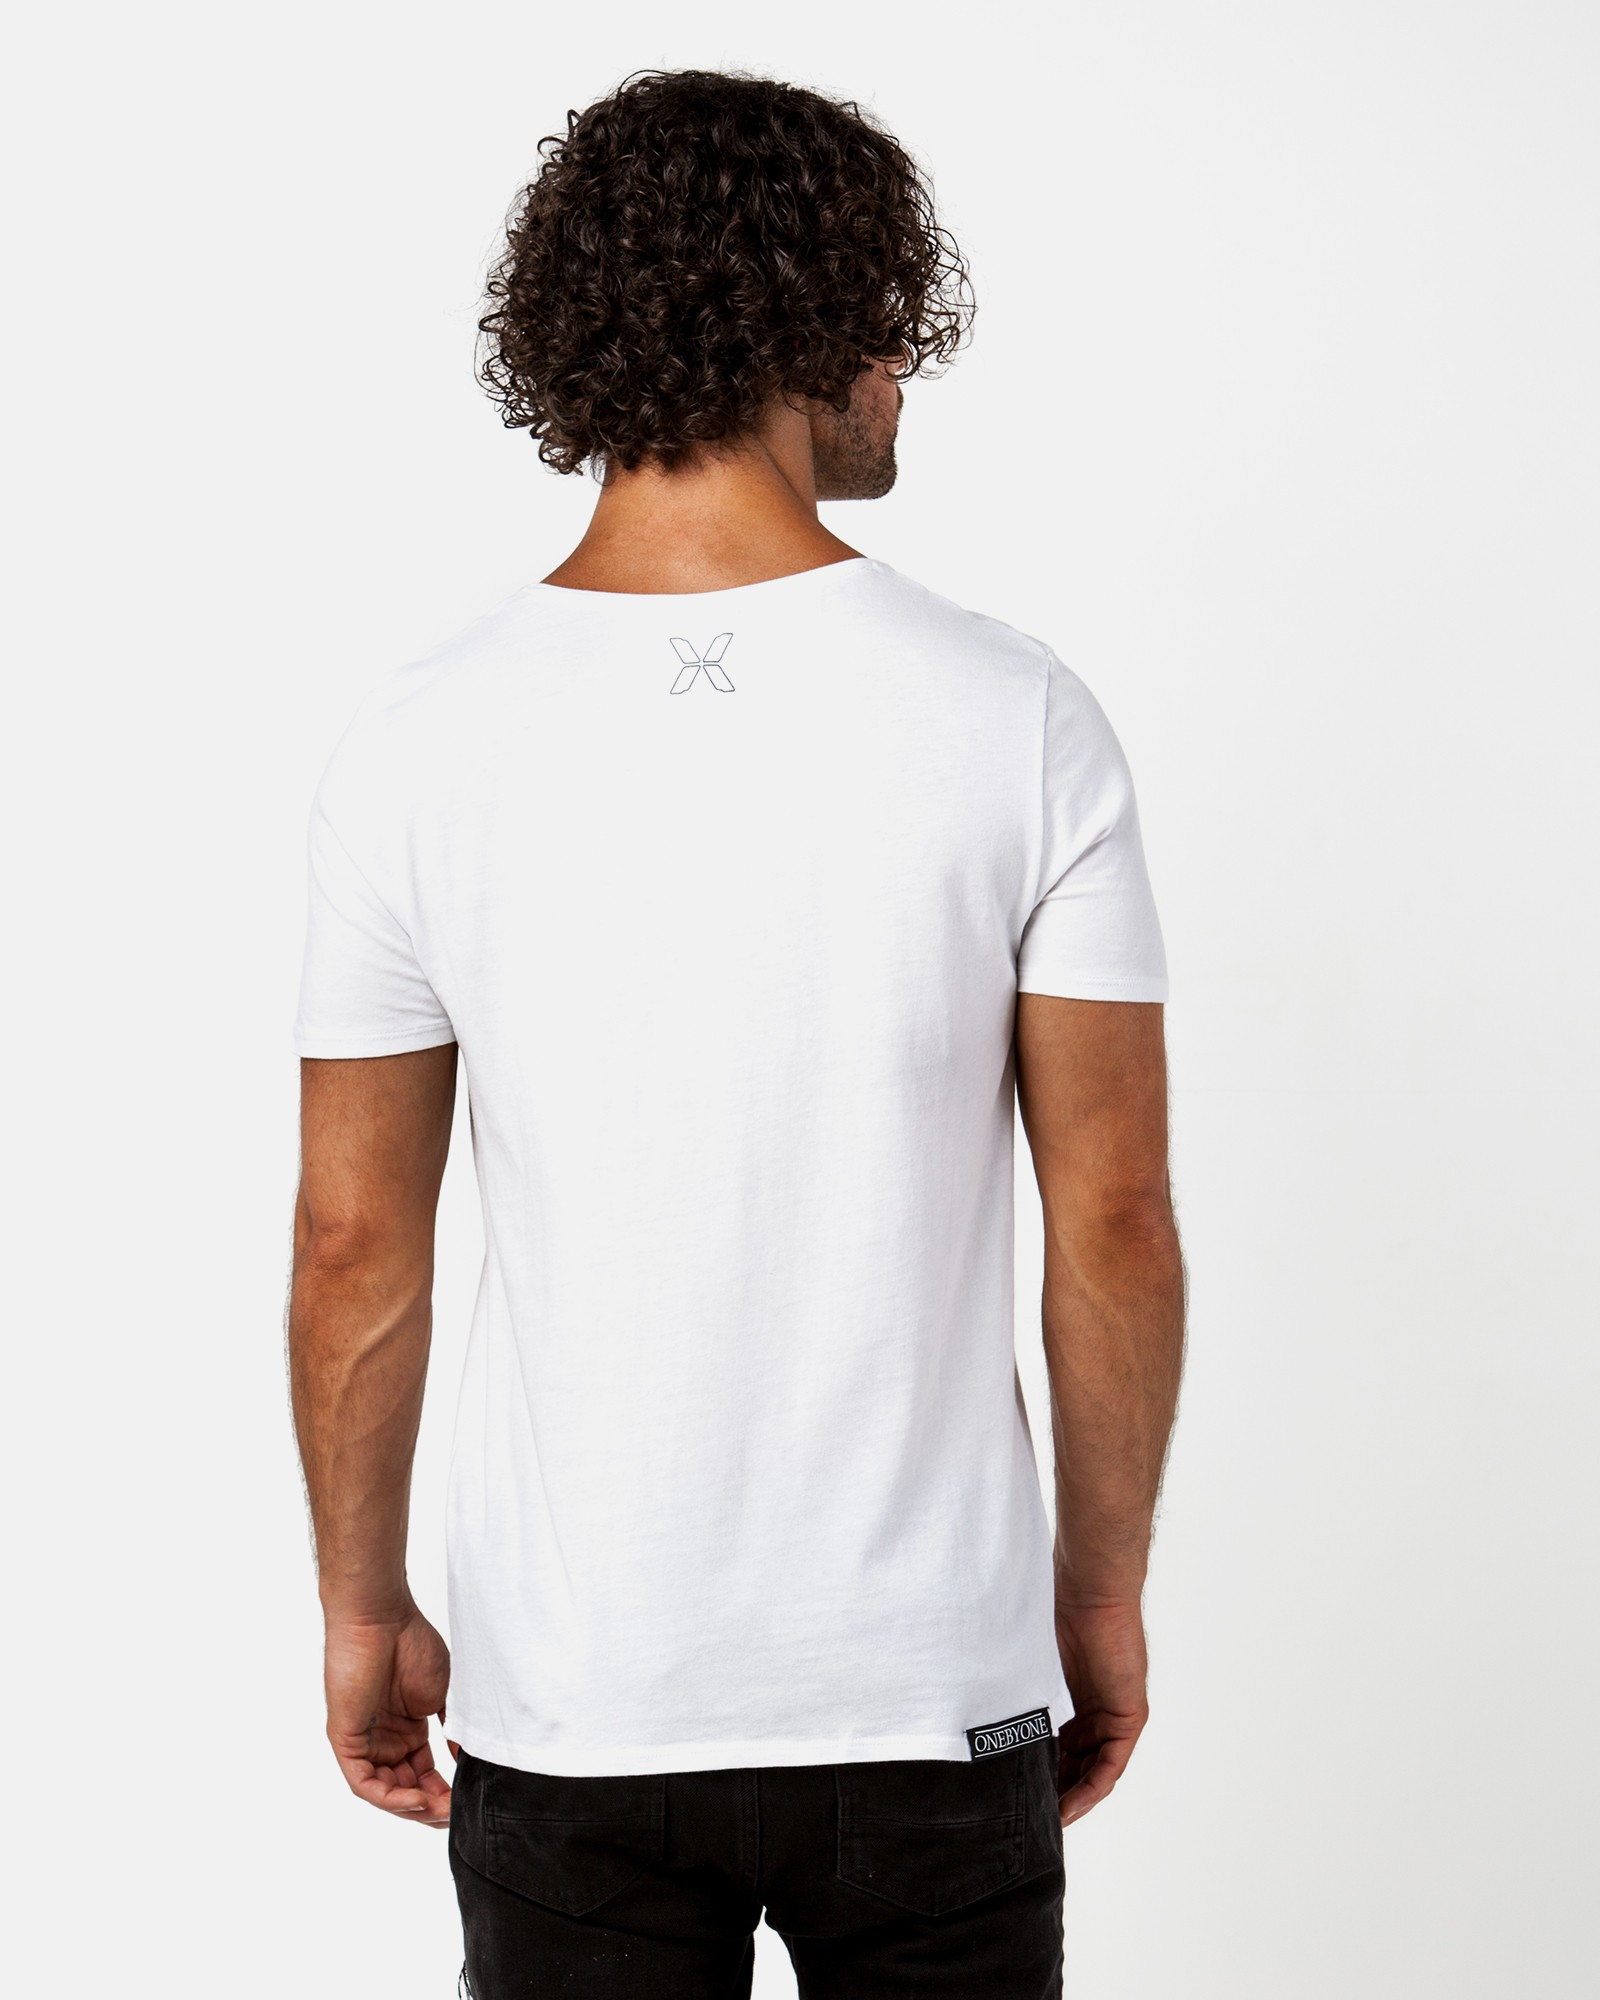 TO THE WOLVES WHITE TEE